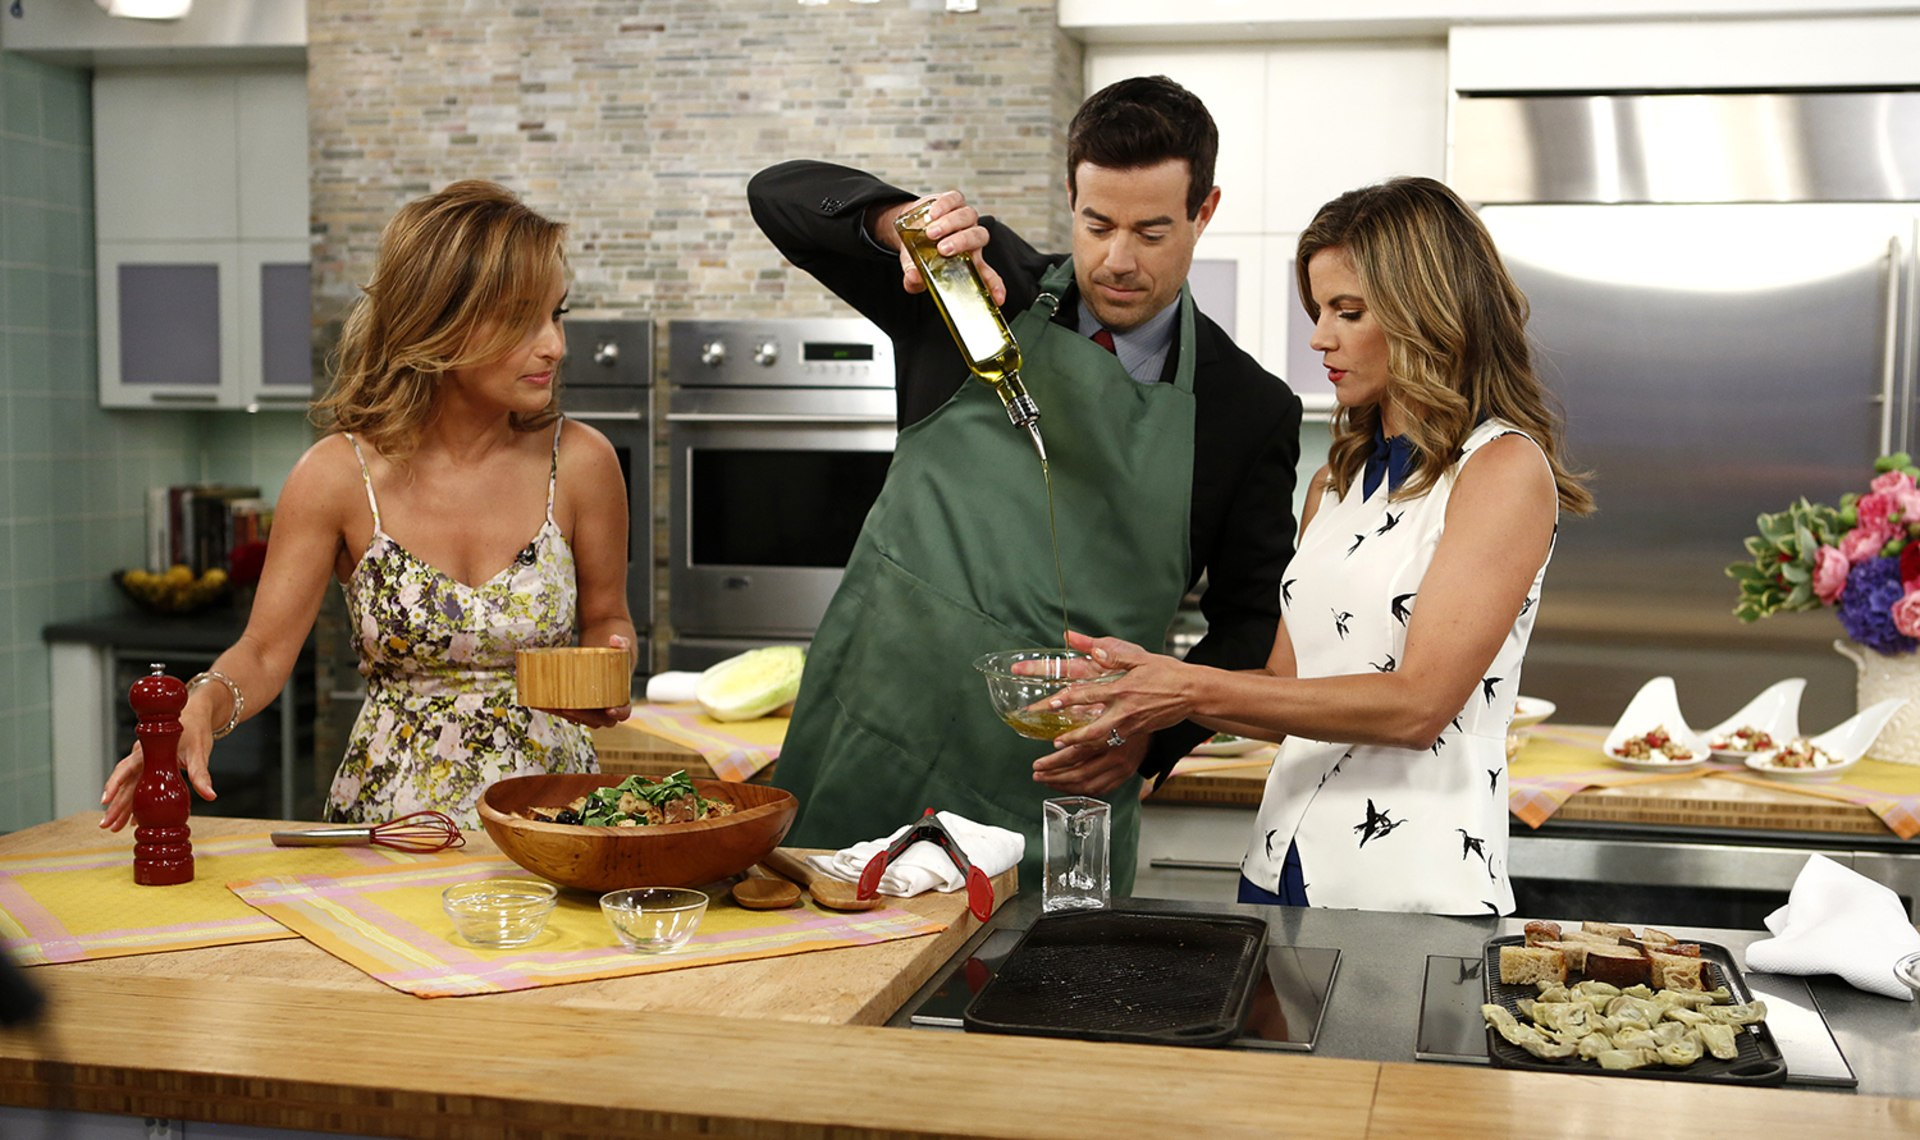 The Kitchen Show Cast from 'trl' to today: carson daly through the years - today